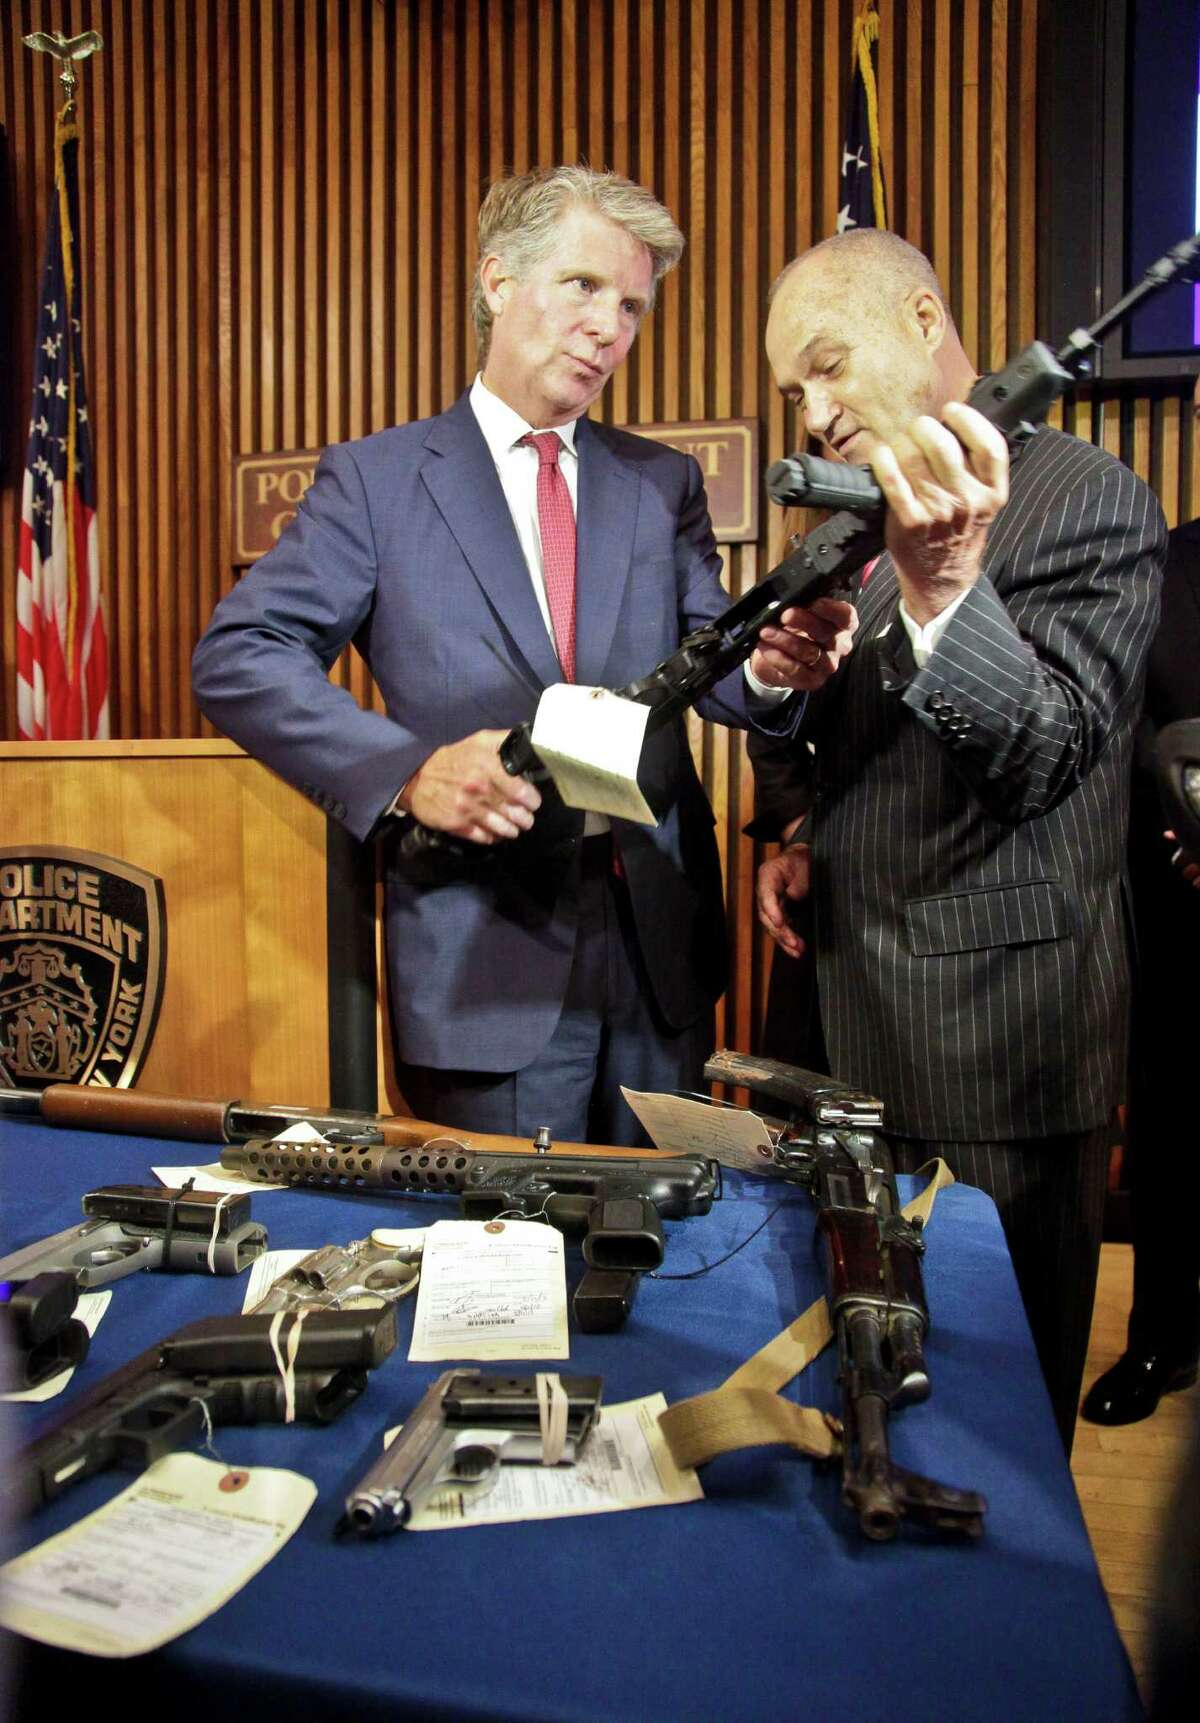 New York Police Department Commissioner Raymond Kelly, right, and Manhattan District Attorney Cyrus Vance, Jr., looks over a firearm at a press conference after announcing the indictment of 33 defendants for stealing and selling motorcycles and illegal firearms, Thursday, July 26, 2012 in New York. (AP Photo/Bebeto Matthews)